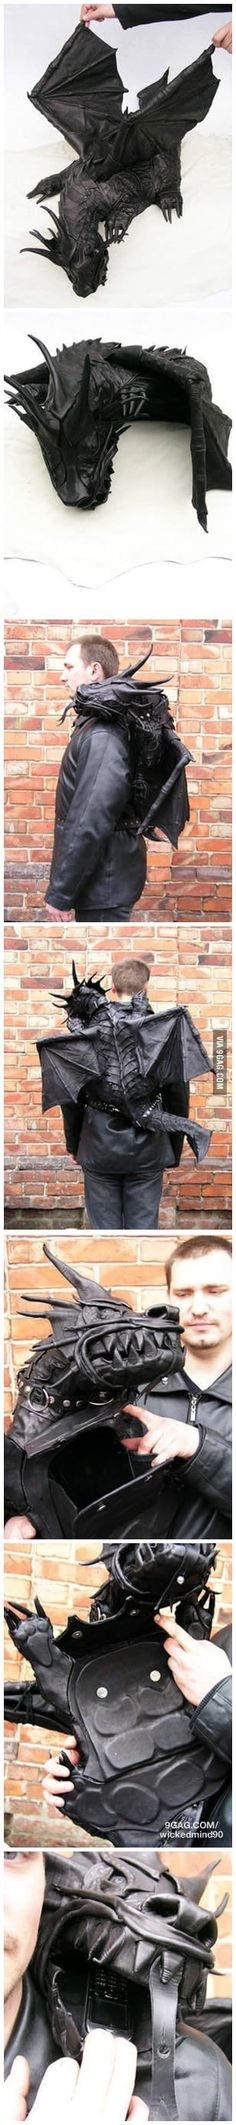 Awesome backpack is awesome